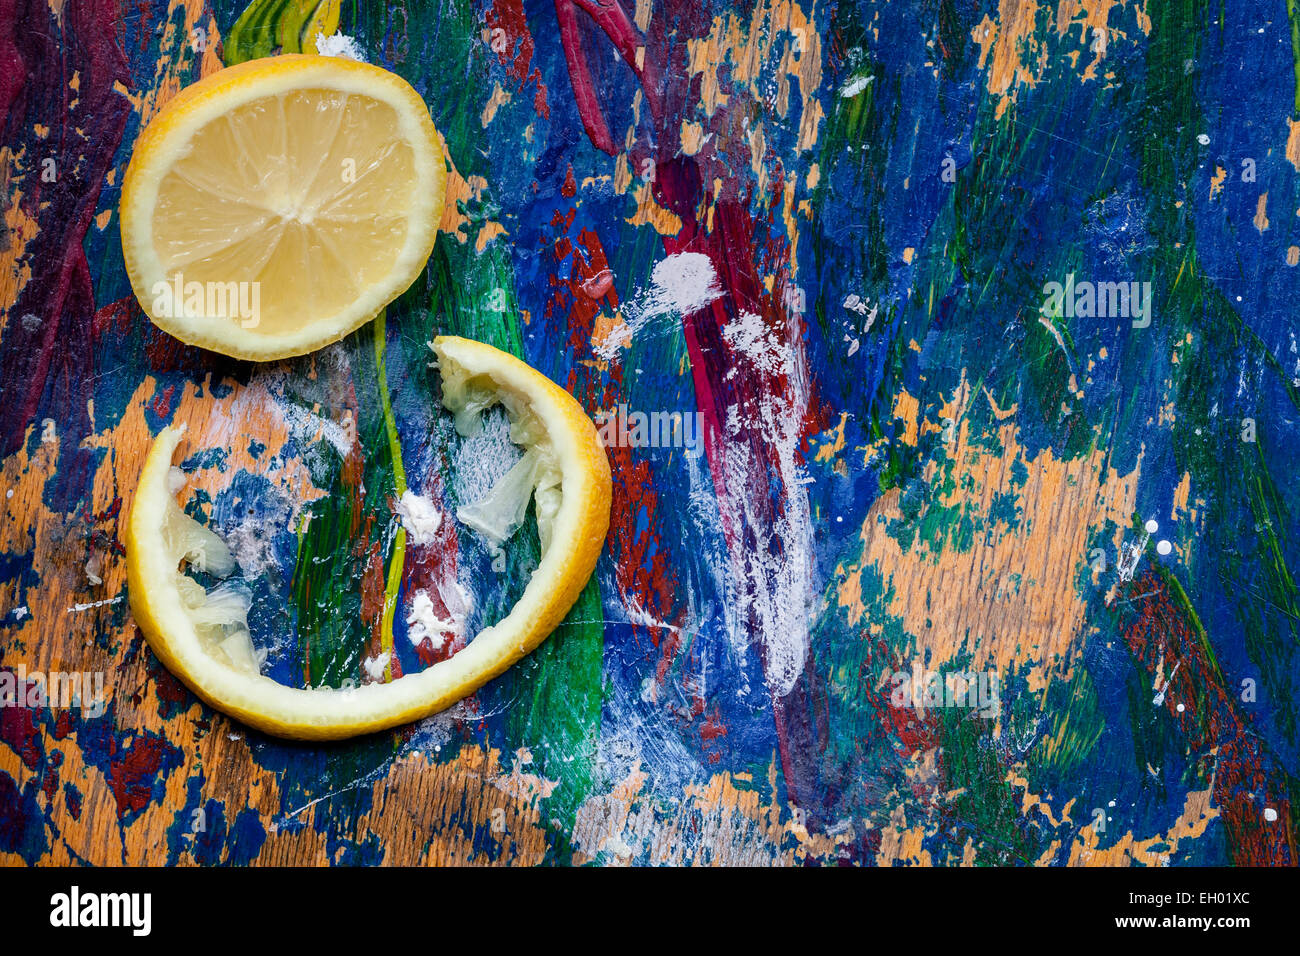 Lemon parts arranged on a colourful background, plenty of room for your text - Stock Image